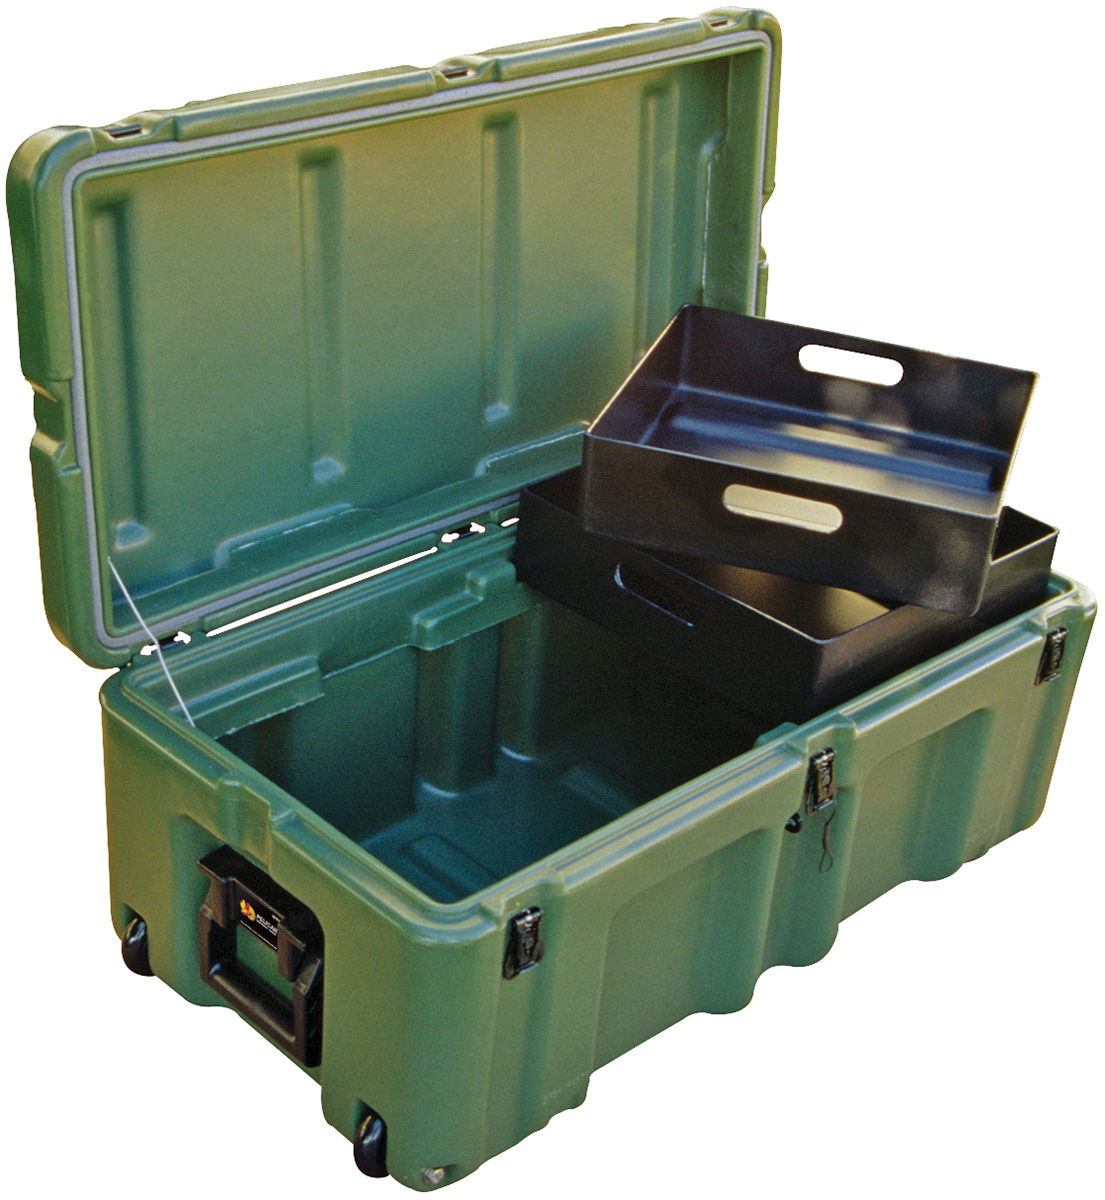 pelican peli products 472 FTLK 1 usa military medical footlocker